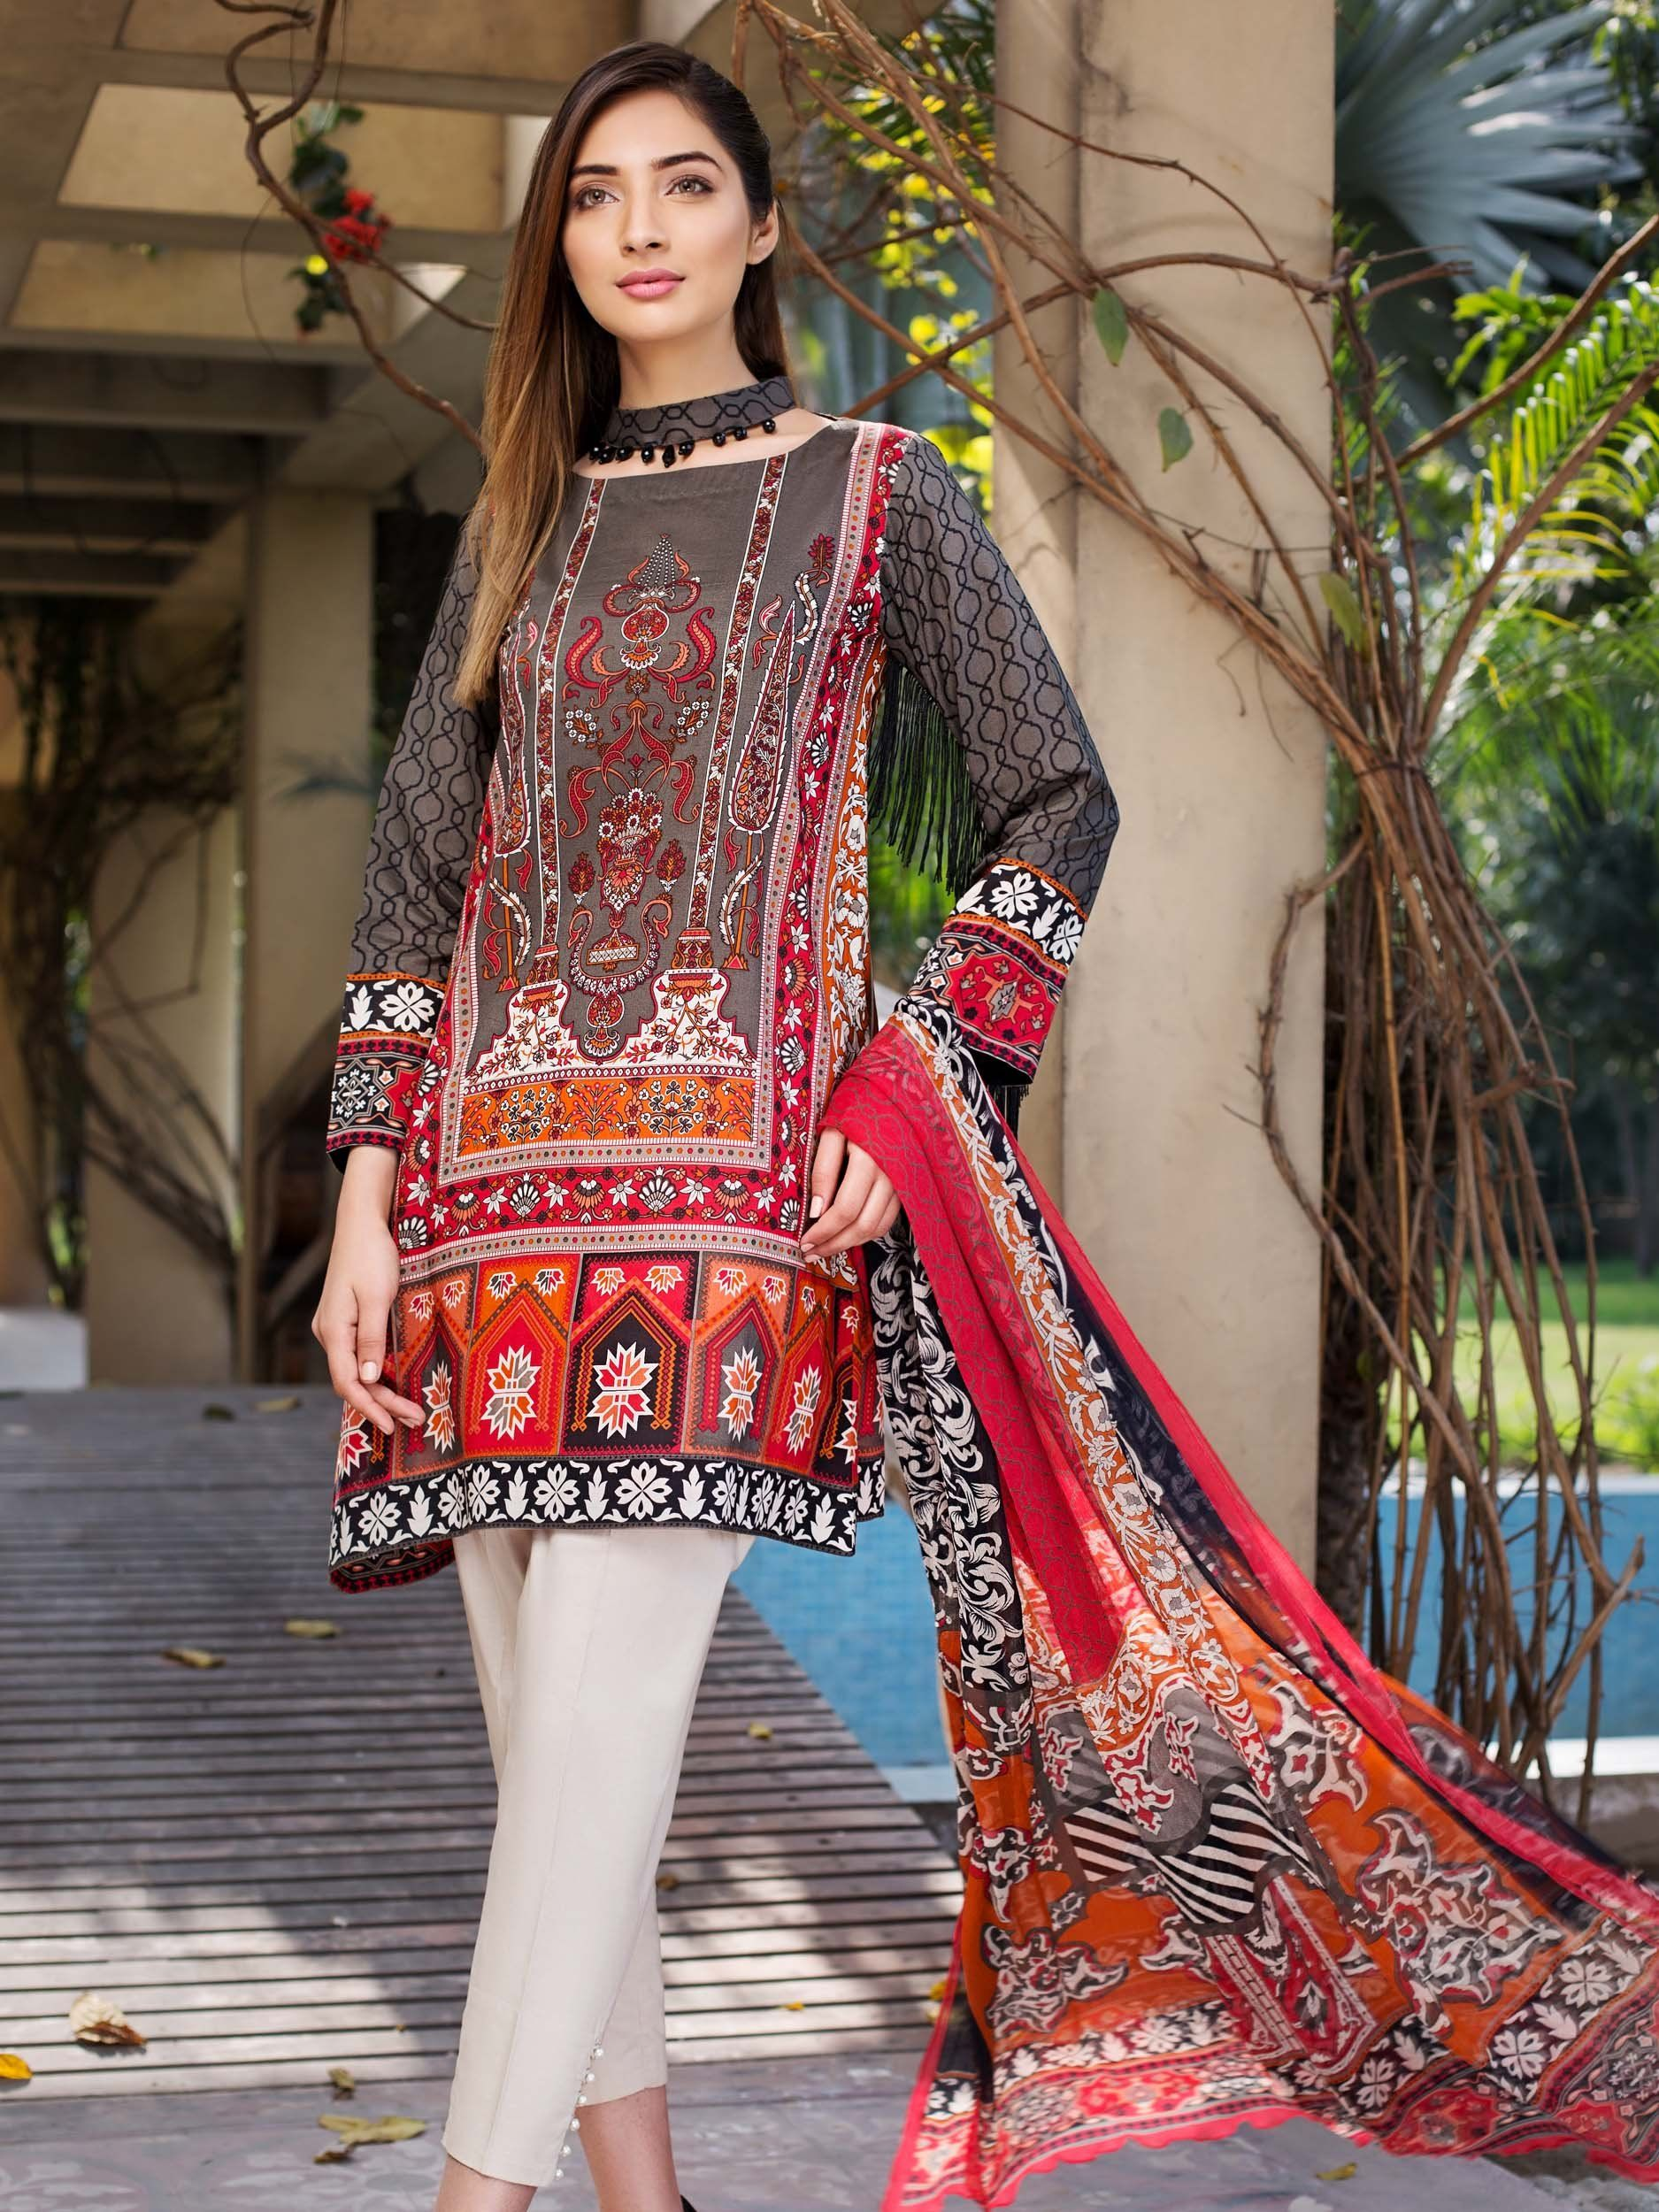 d192749a7a elegant grey lawn 3 piece pret dress by Limelight printed collection  vol.2at a very reasonable price#springcollection #spring #readytowear  #pretwear ...